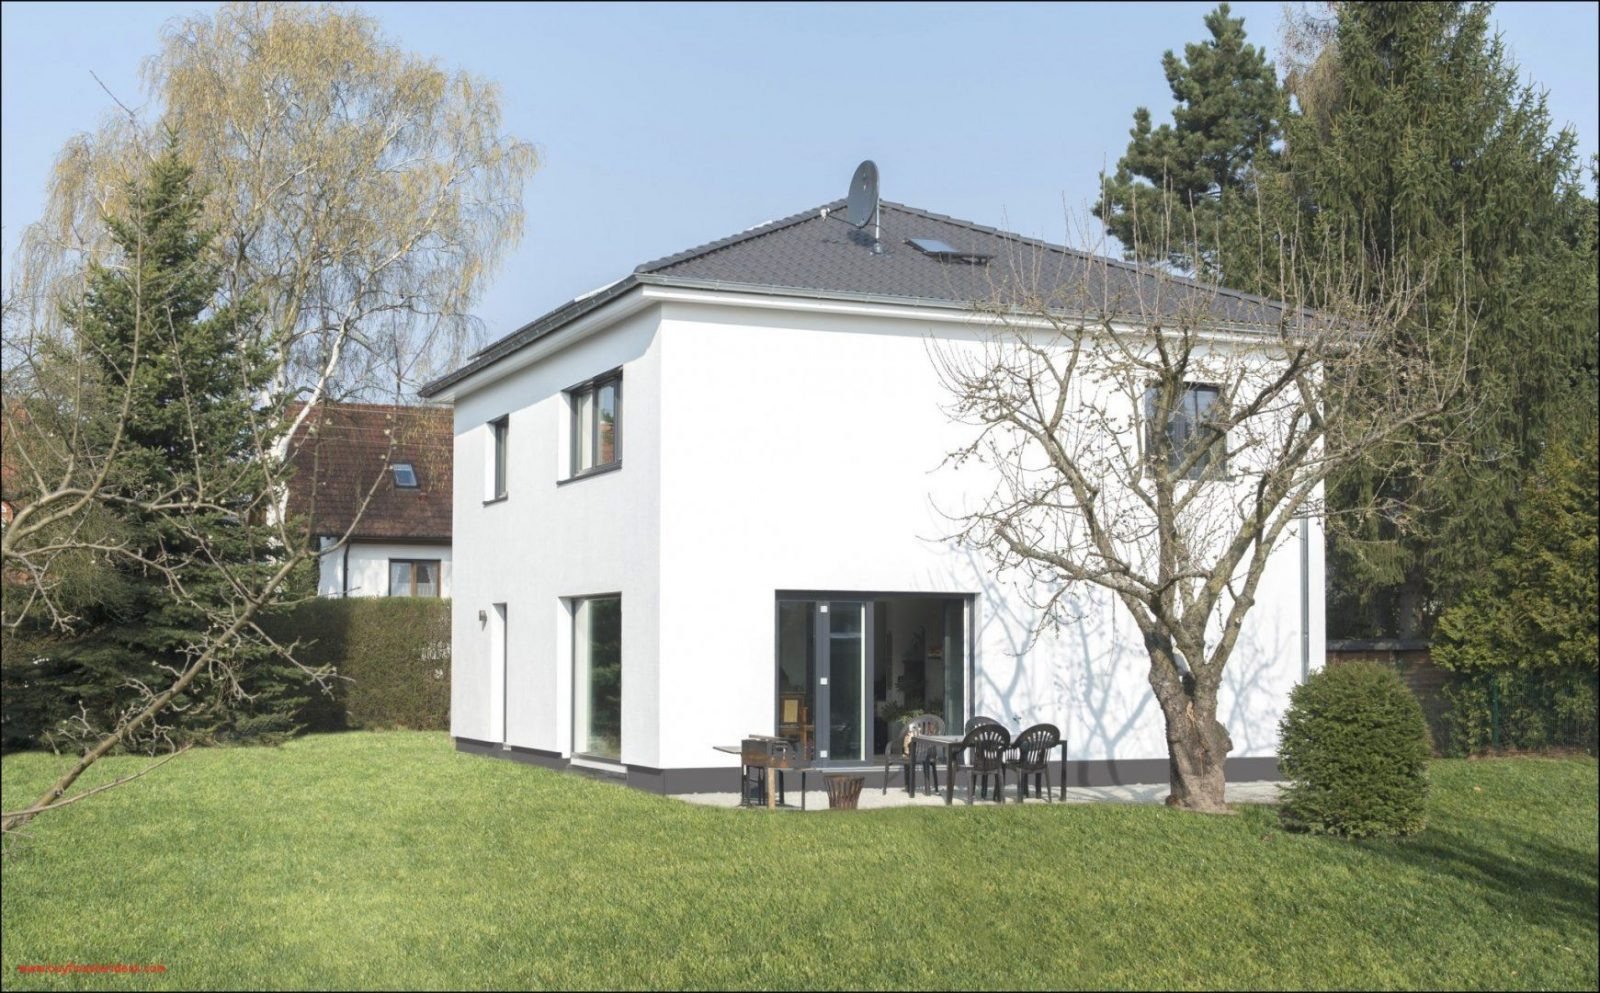 6 Beautiful Plan Haus Komplett Selber Bauen Wallpaper